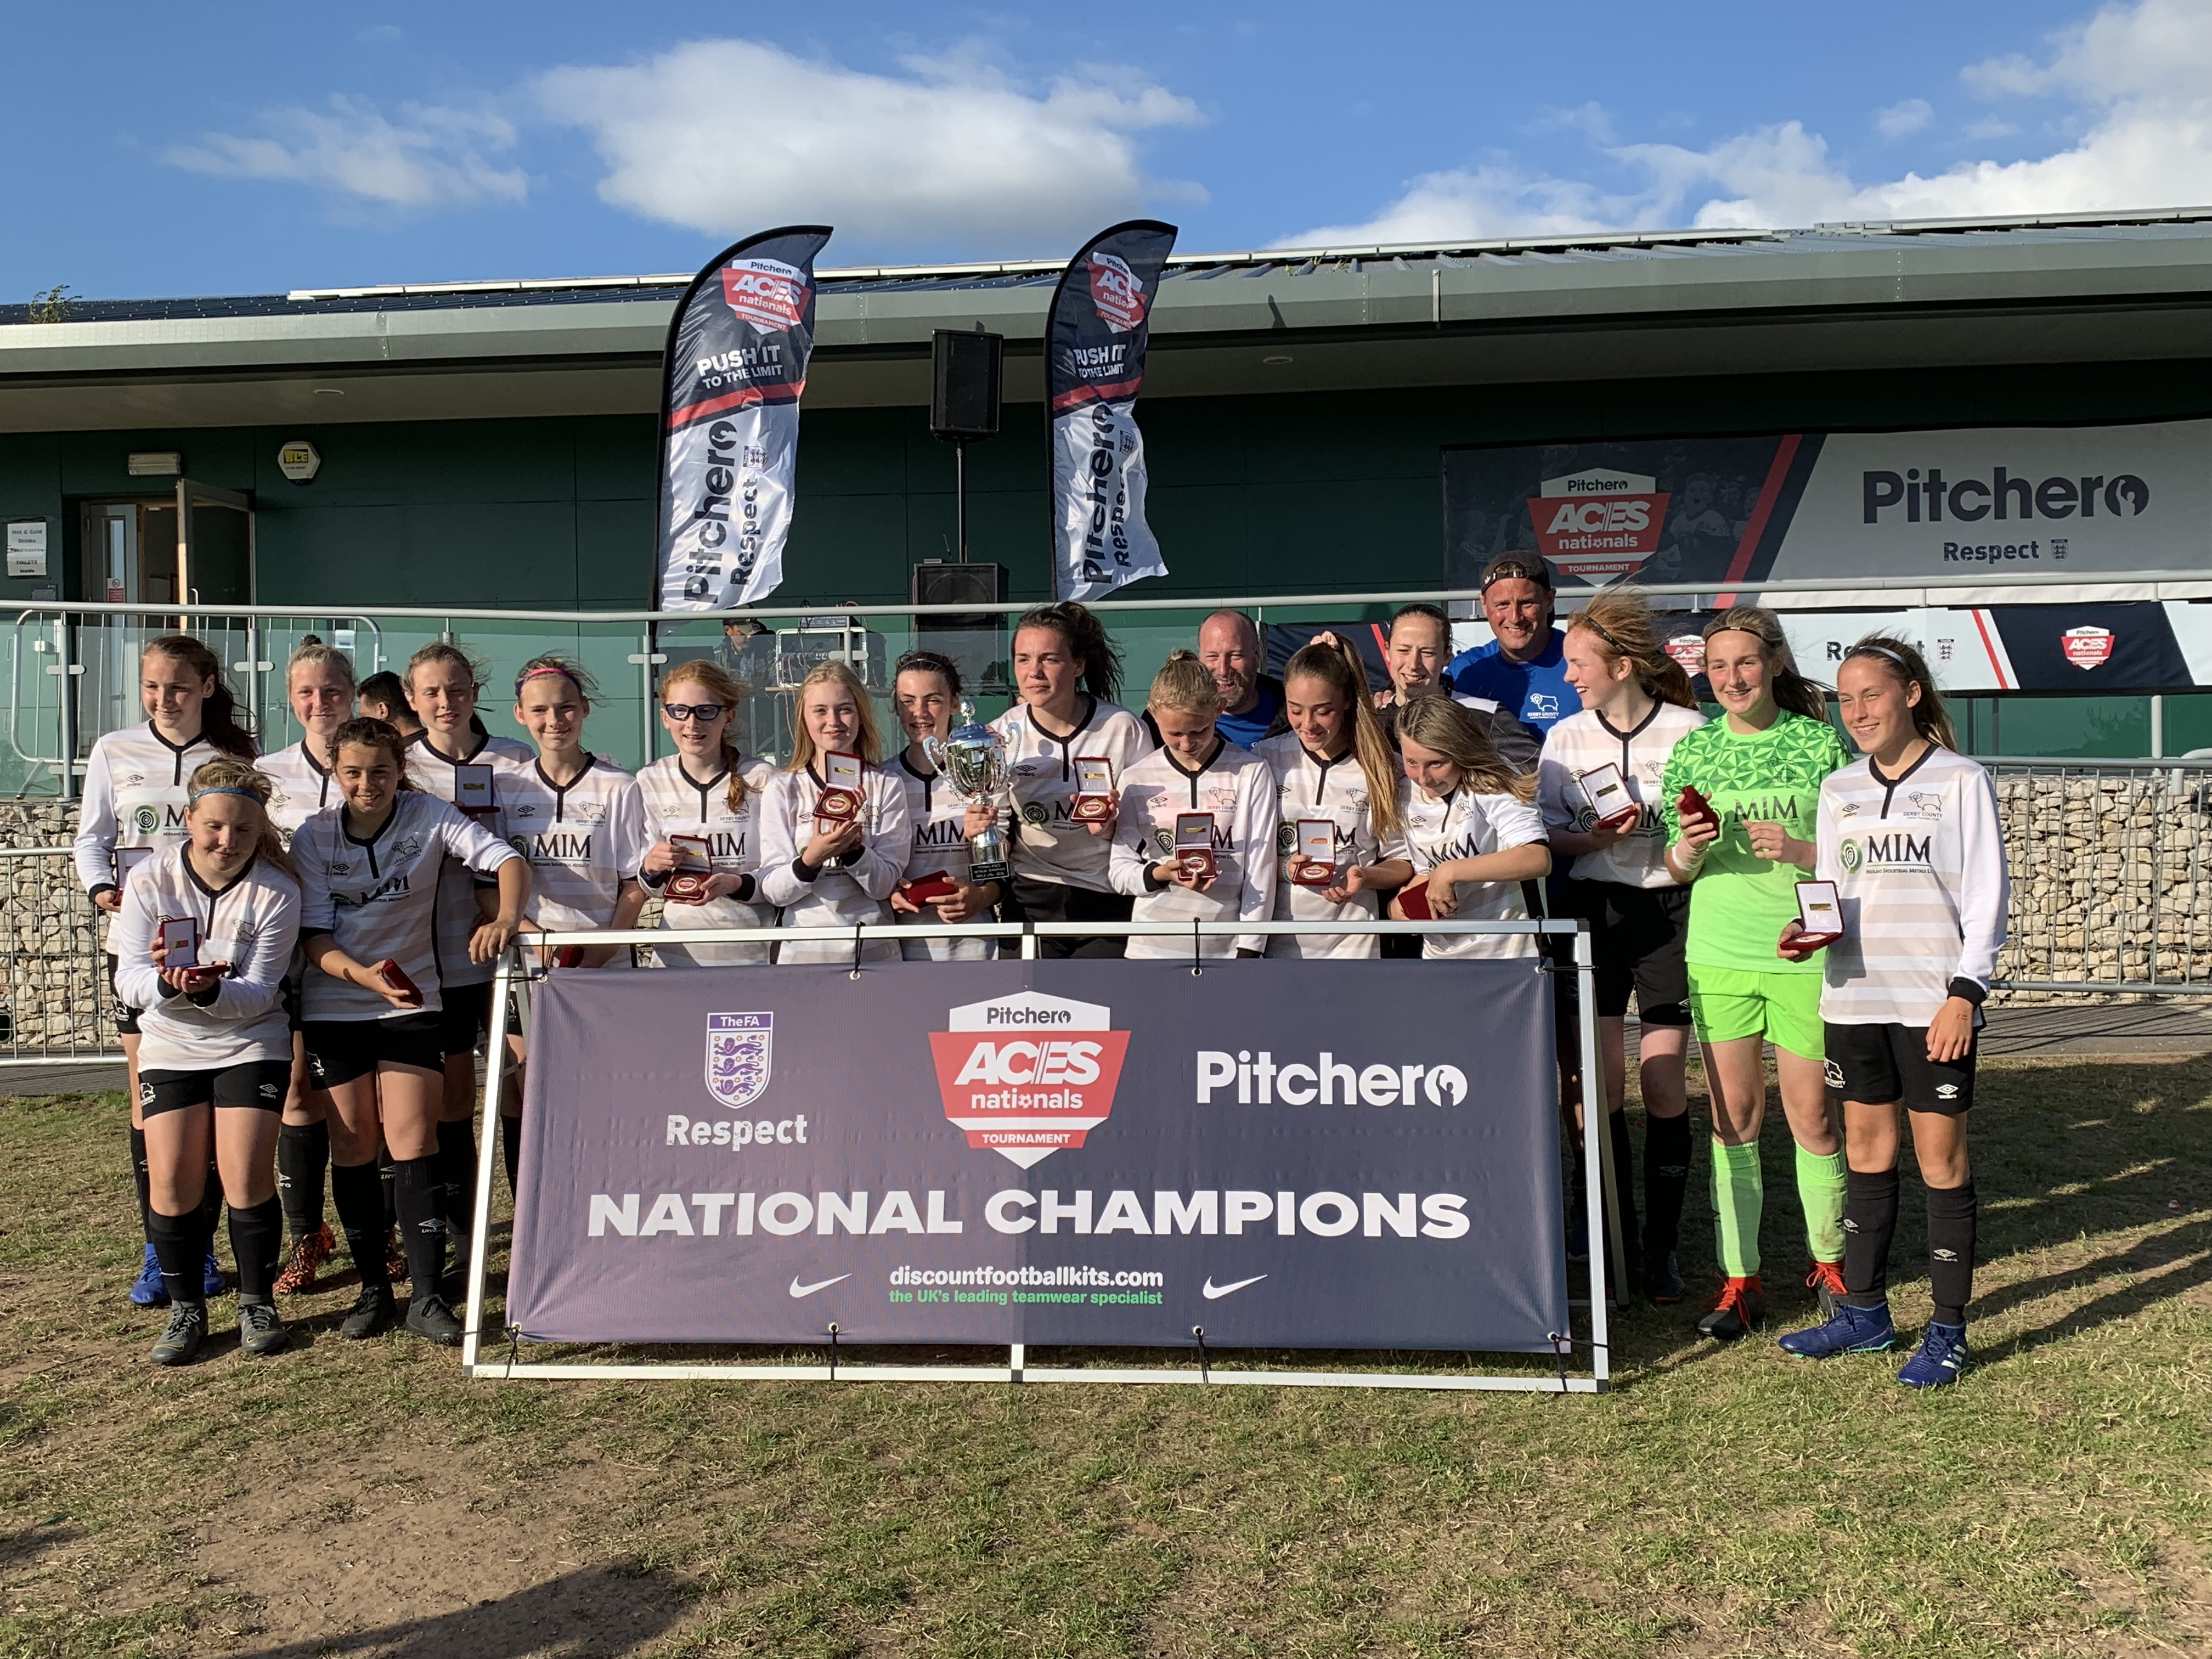 2019's GU15 champions, representing Derby, Derby County